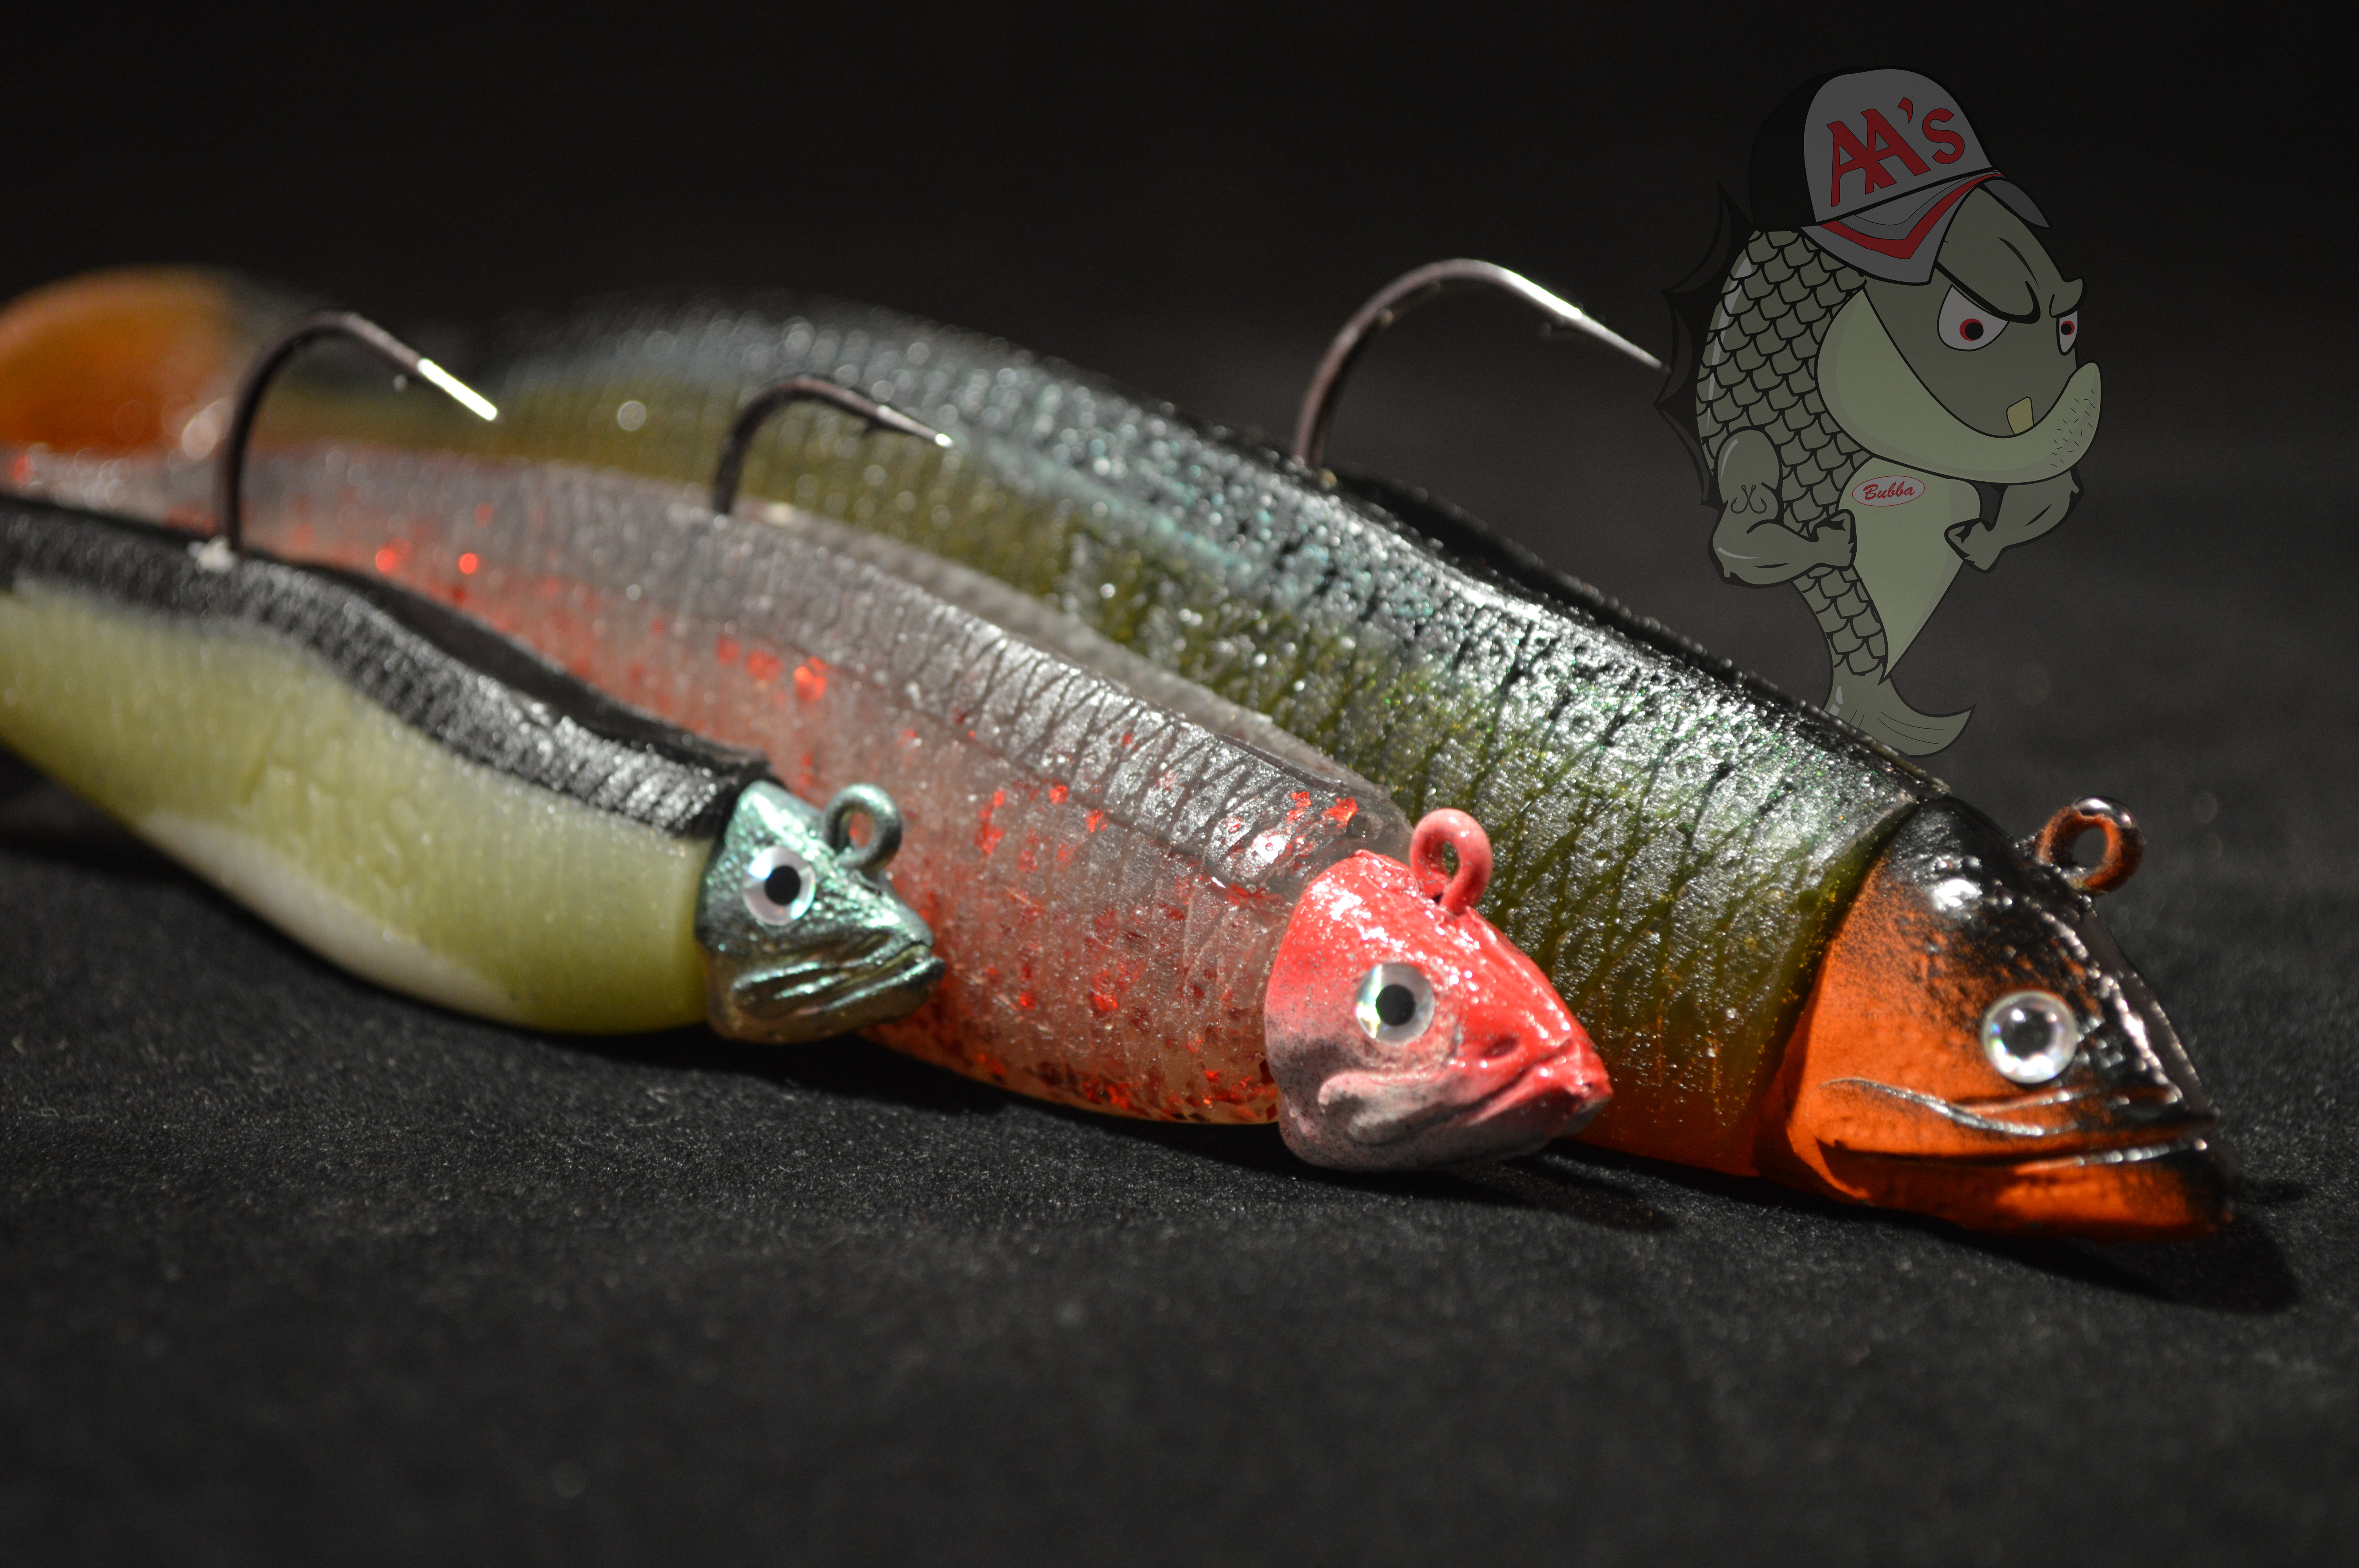 icast 2015: AA worms Bad Bubba Shad